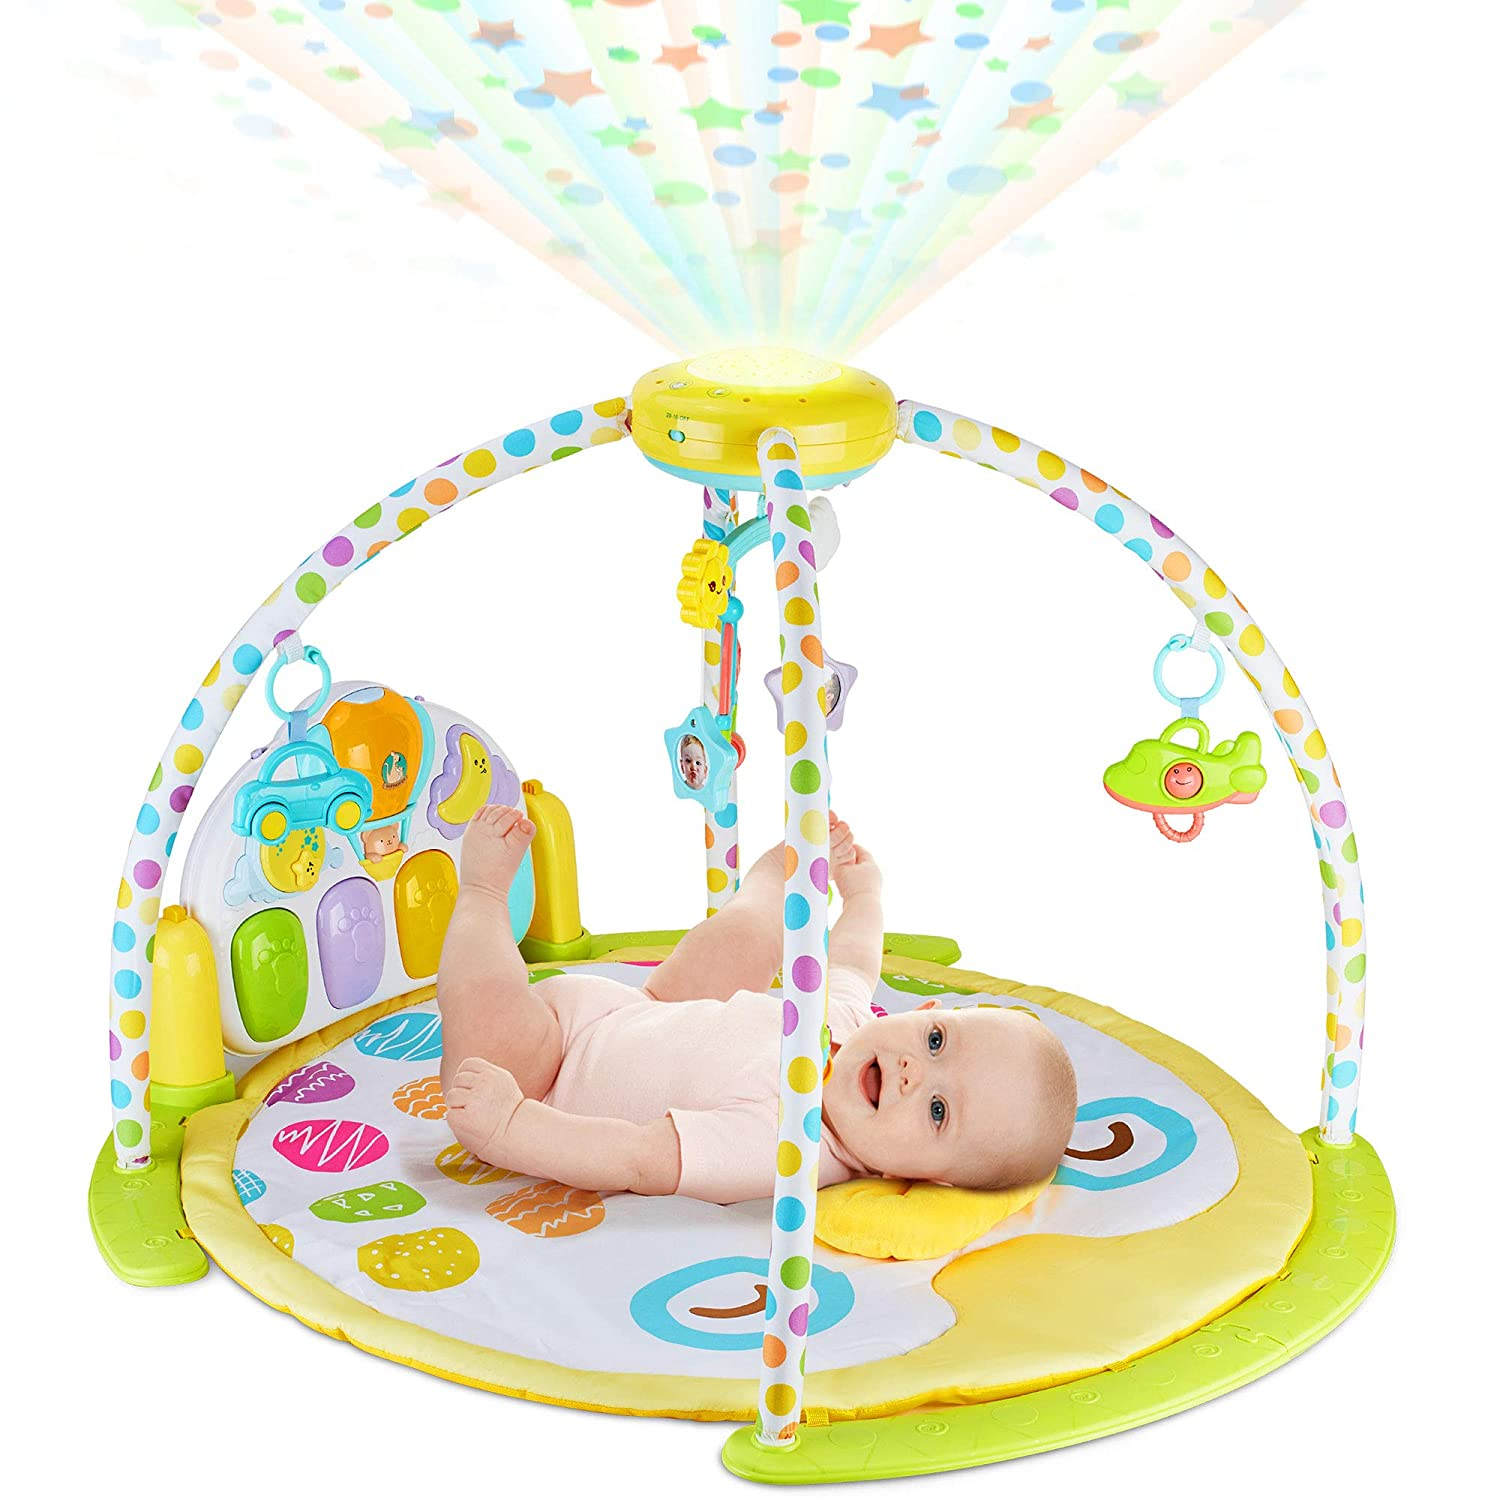 NEW 2019 Baby Gym Kick and Play Piano Activity – 0m+ Large Play & Learn Infant Toys Jungle Gym – Baby Kick Piano Mat with Rotating Star Mobile & Star Projector – Machine Washable Newborn & Toddler Gym BABYSEATER